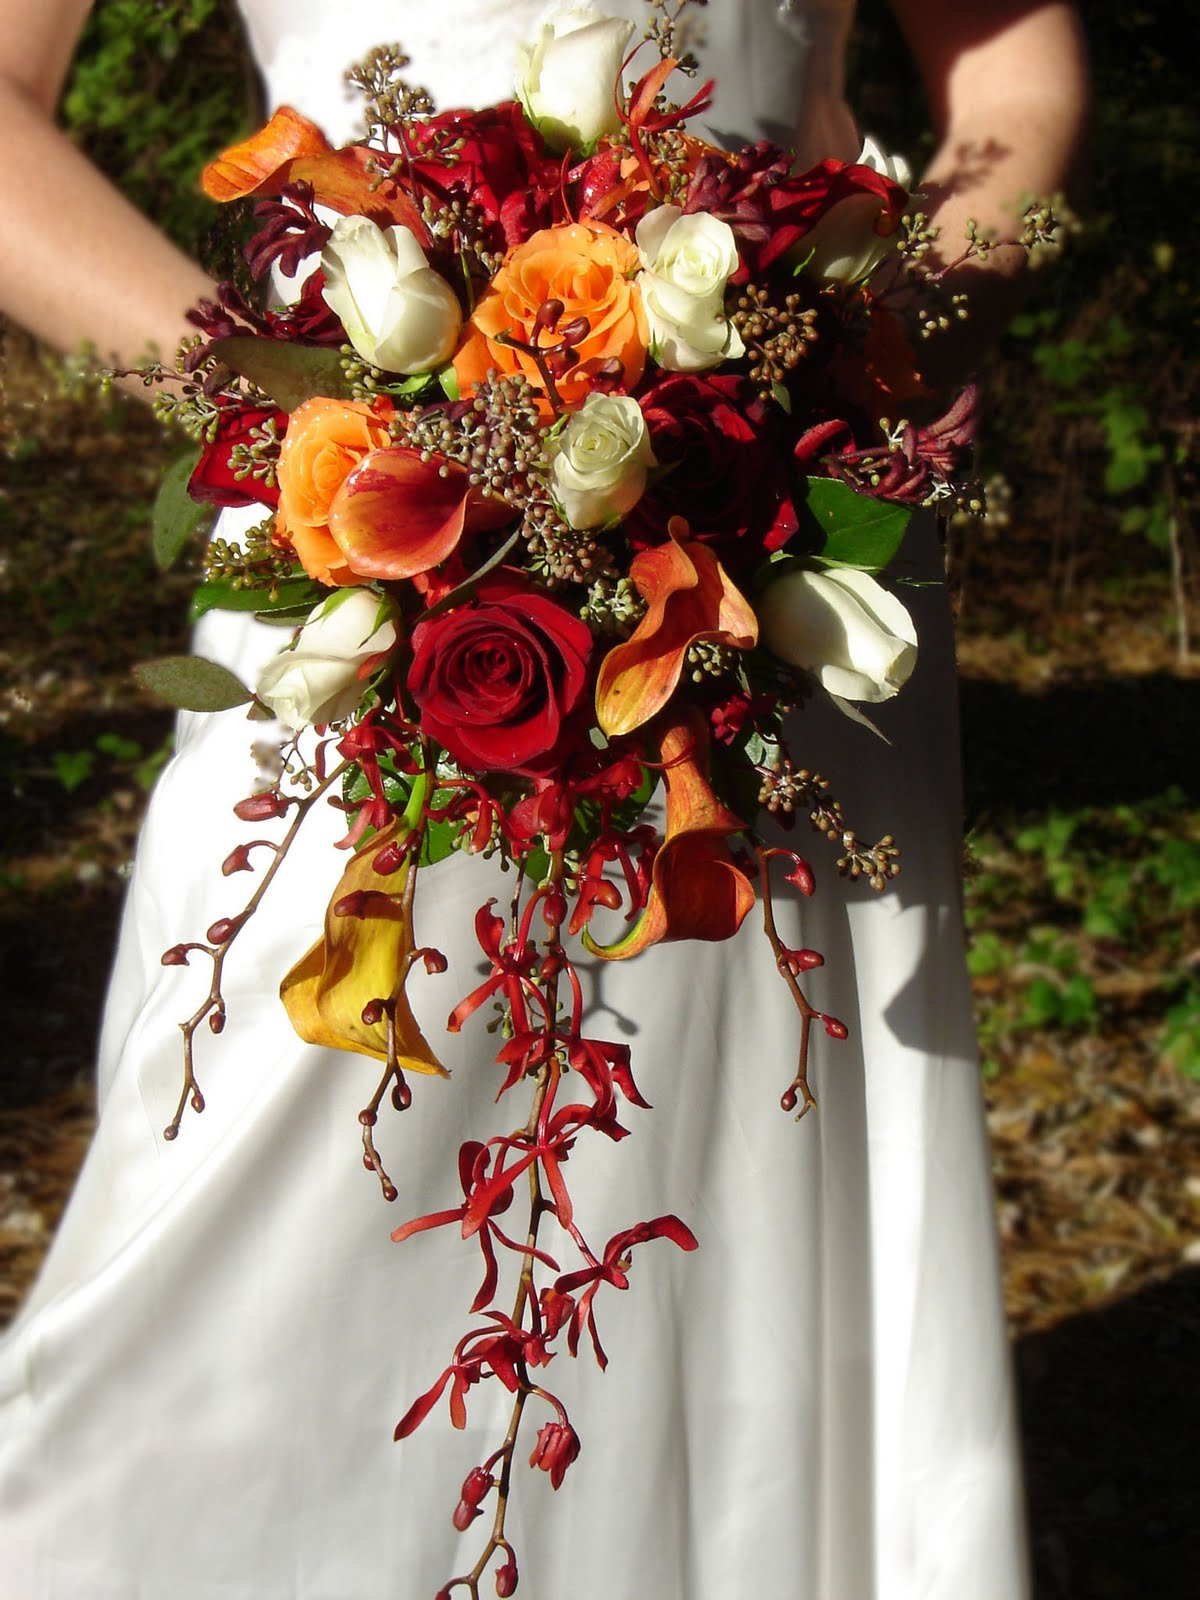 Amazing fall wedding themes and colors wedding amazing fall wedding themes and colors junglespirit Gallery